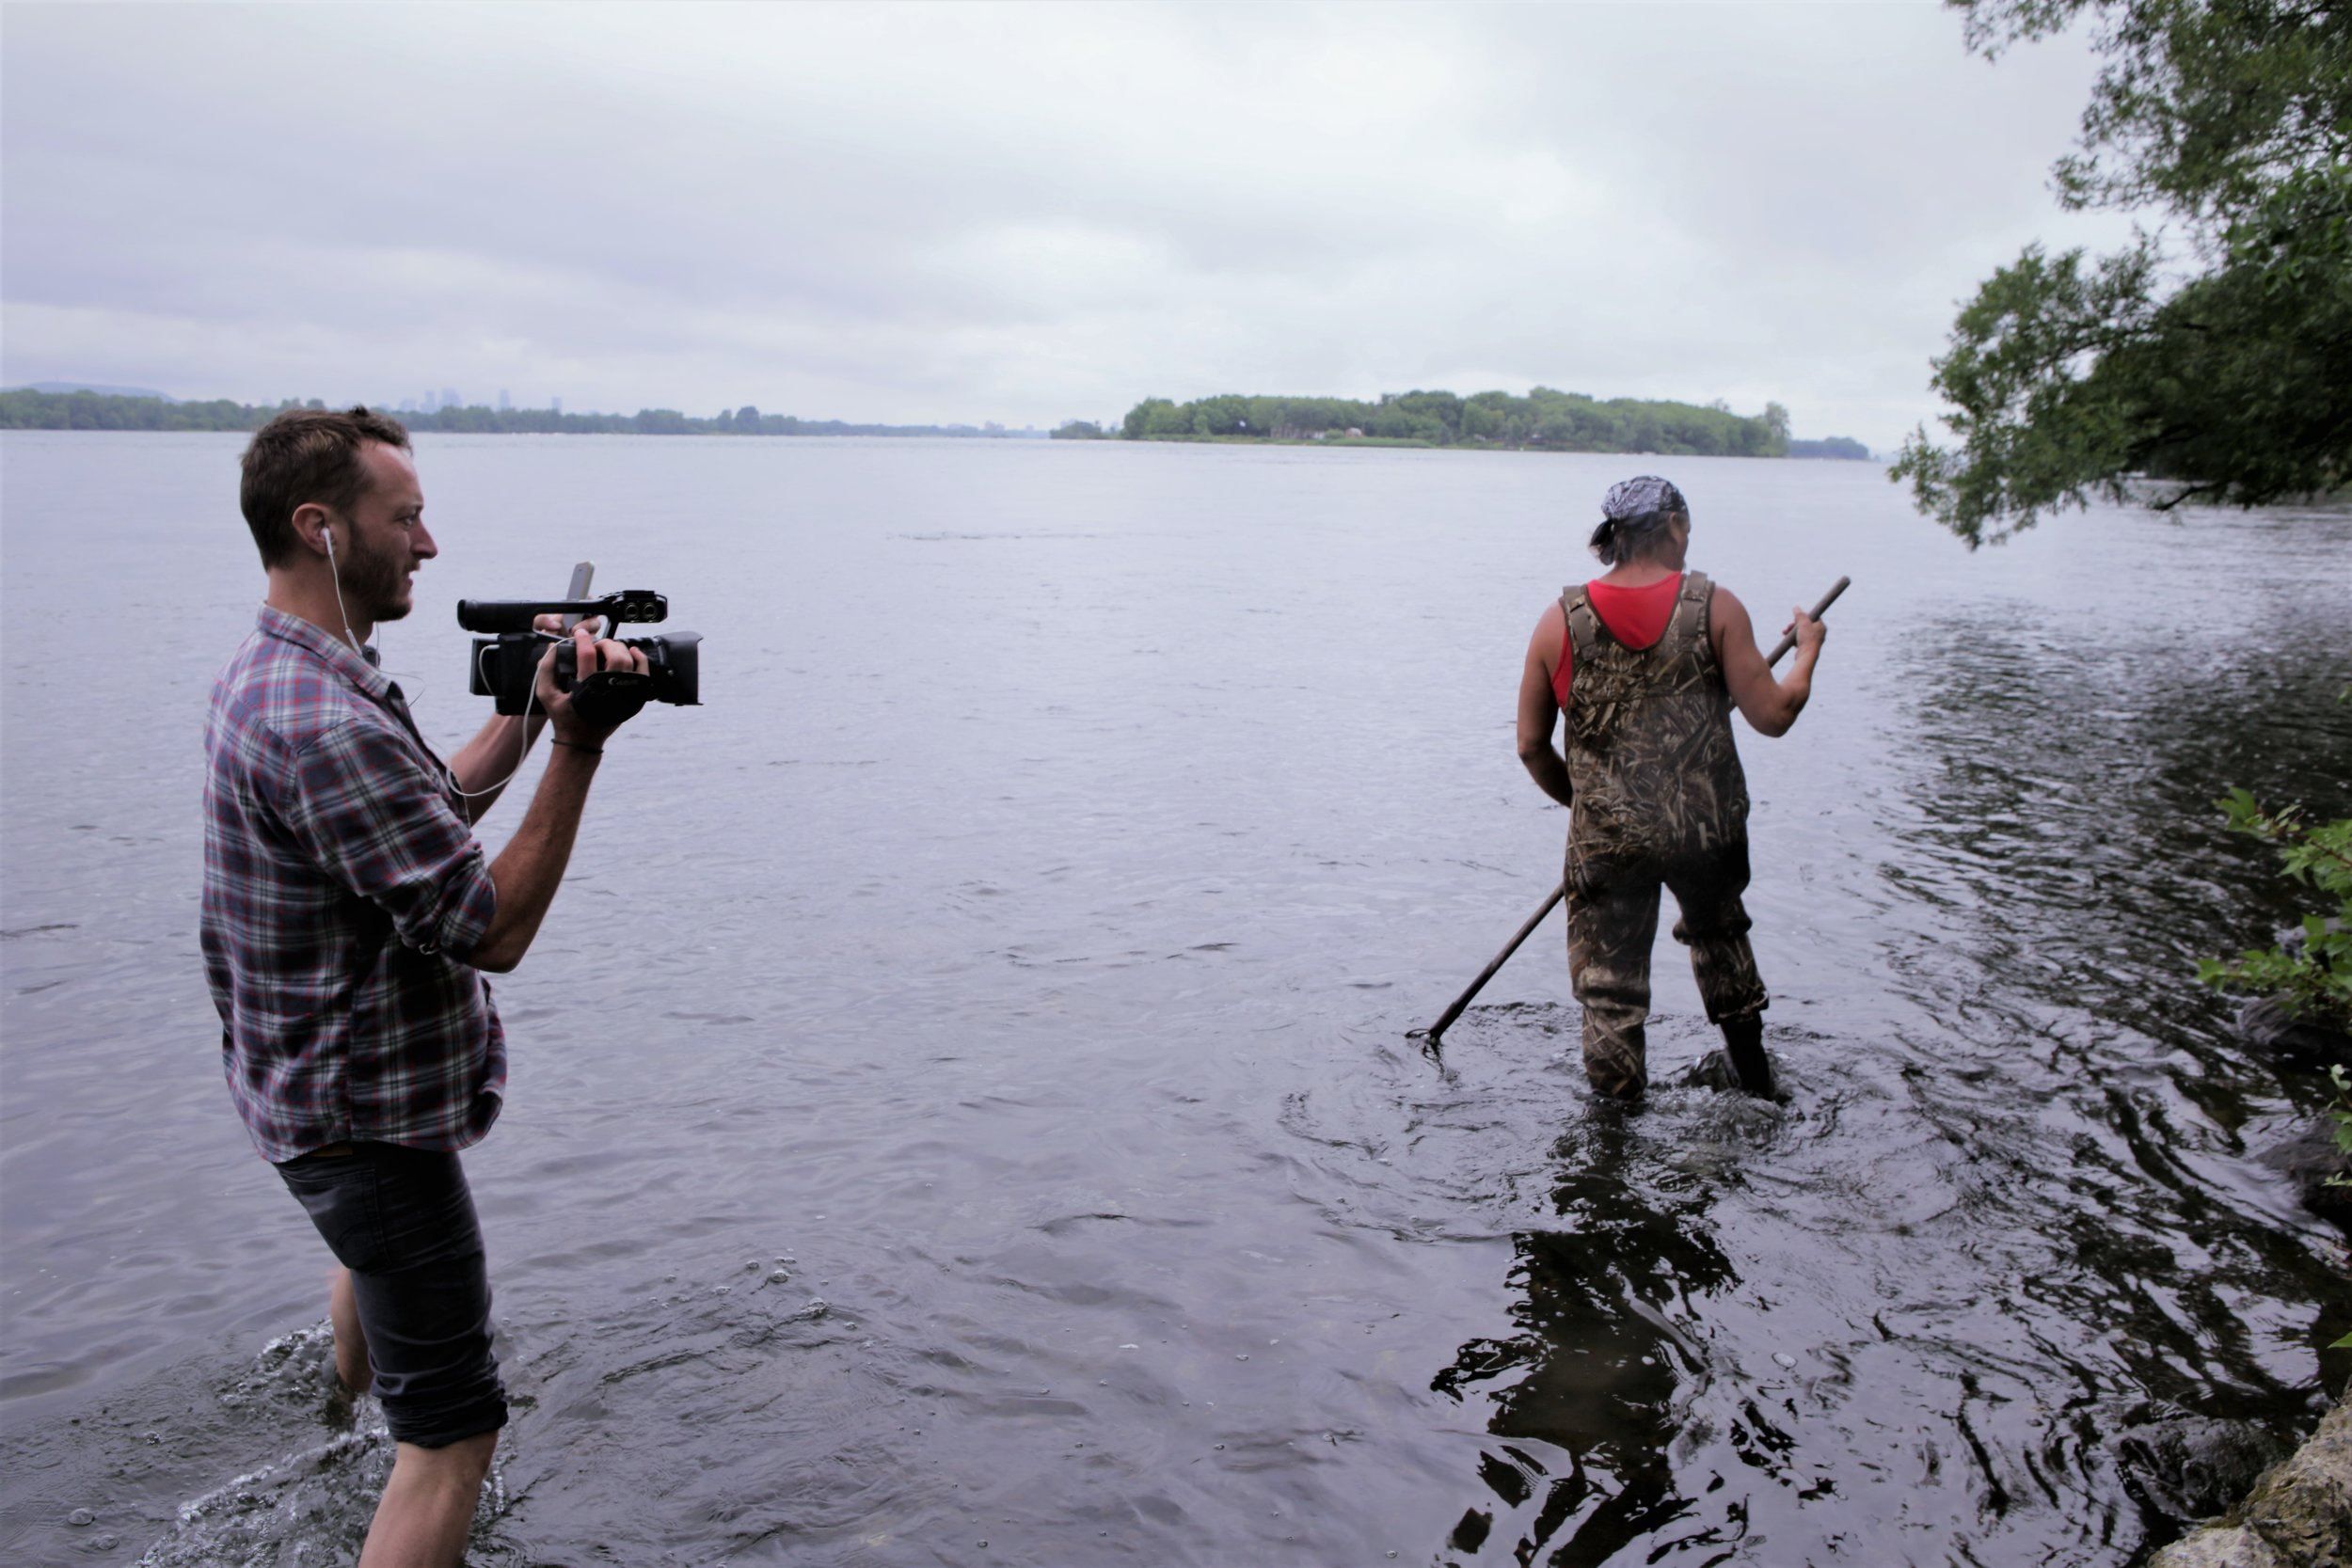 Co-director & producer, Ryan White (left) capturing Dirt (right) as he spearfishes in the St. Lawrence river. Photo dimensions 5472 x 3648